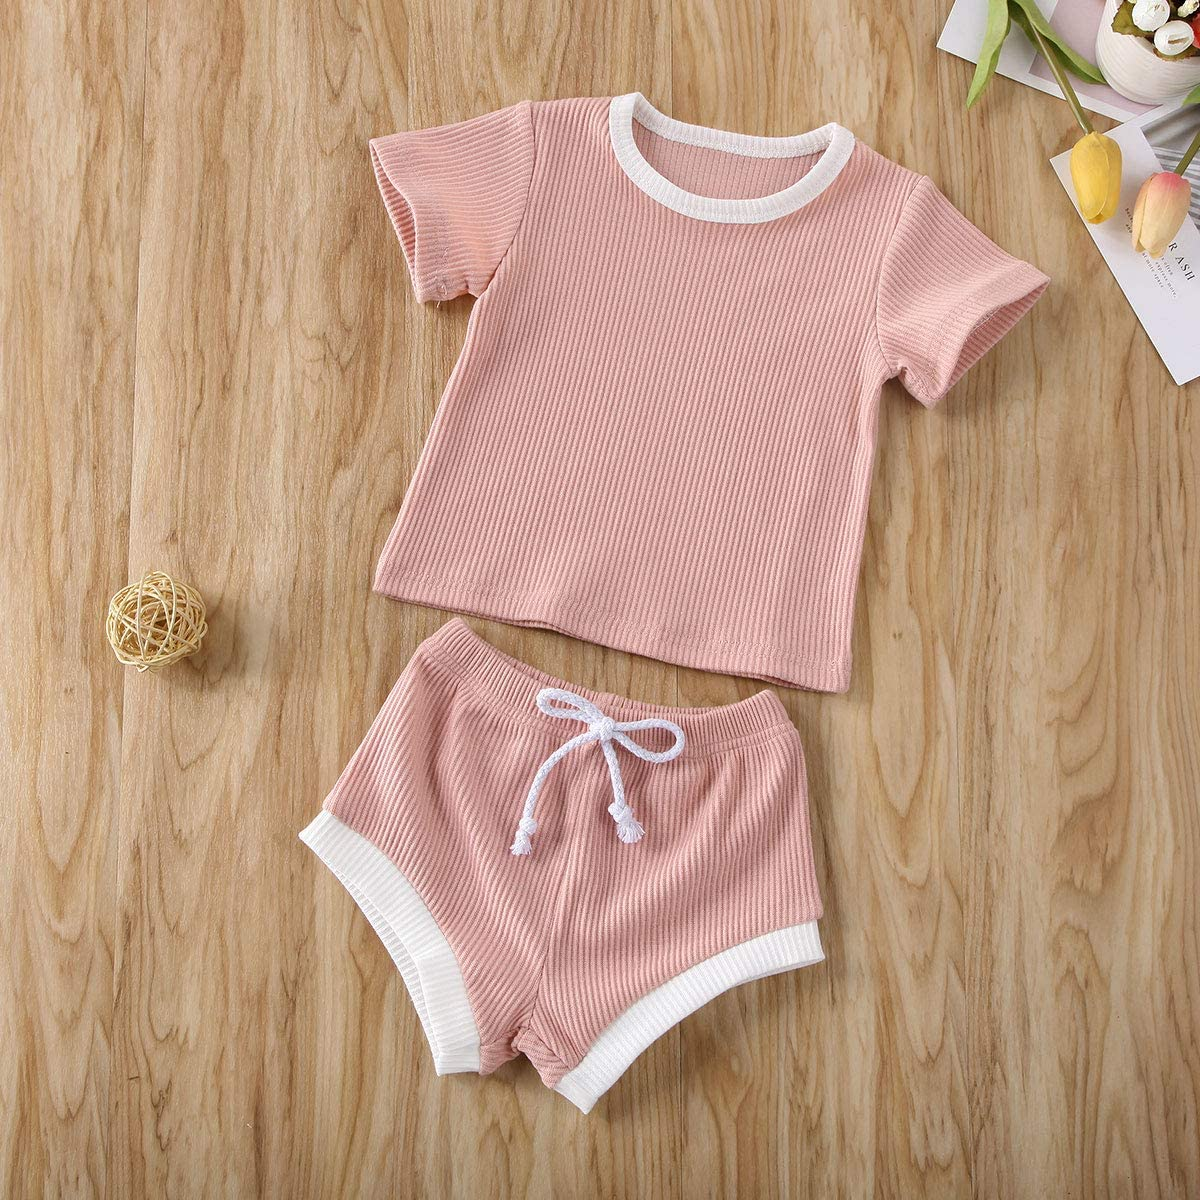 Organic Cotton Clothing Set for Infant Baby Boys Girls Top with Pants Set 2 Piece Outfit Baby Unisex Pajamas